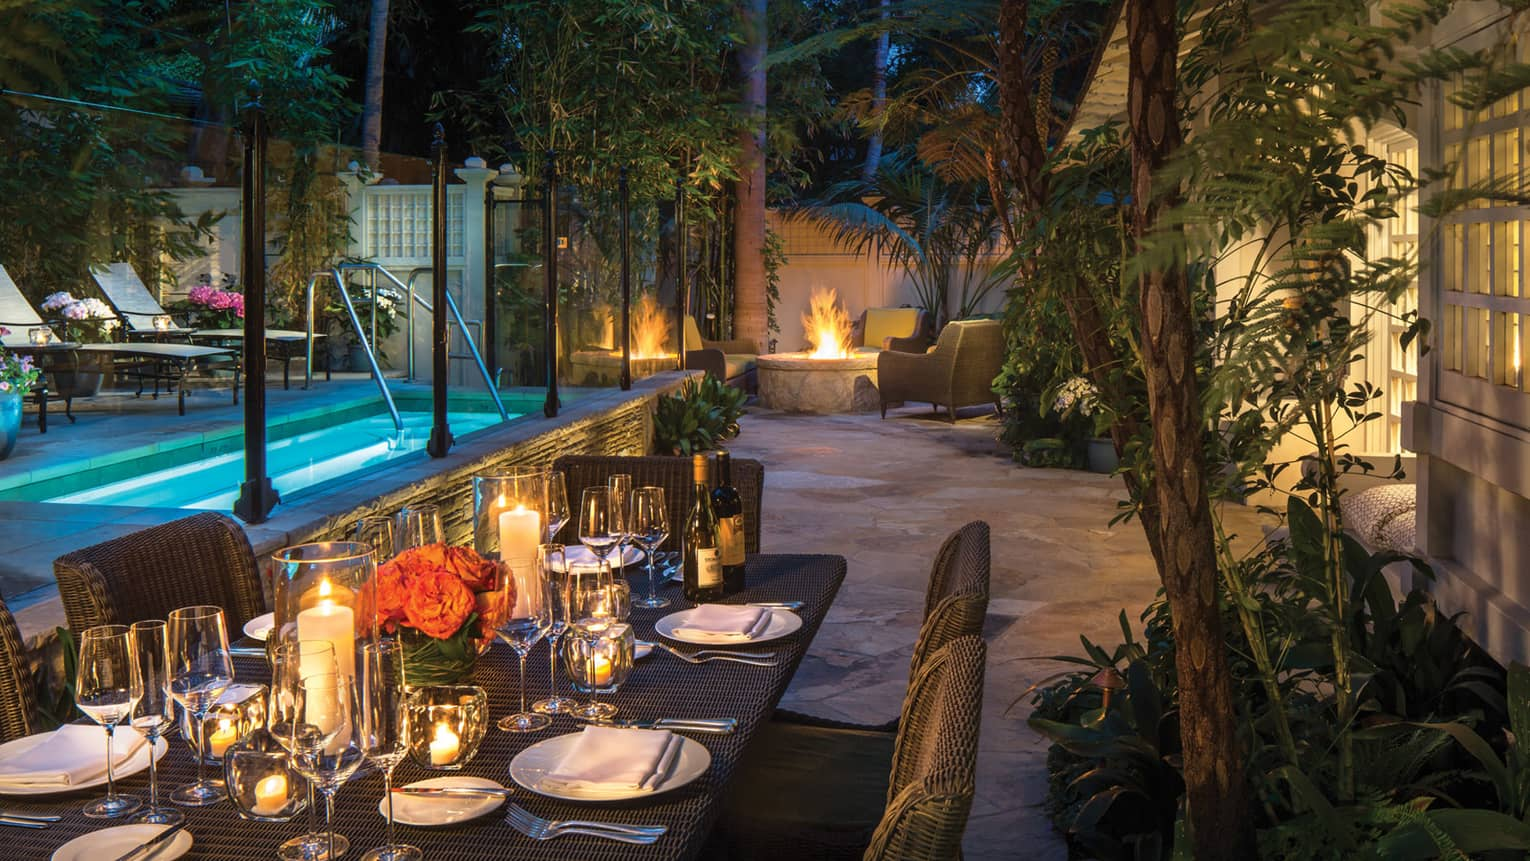 Ty Warner bungalow backyard candle-lit patio dining table by plunge pool, fire pit at night